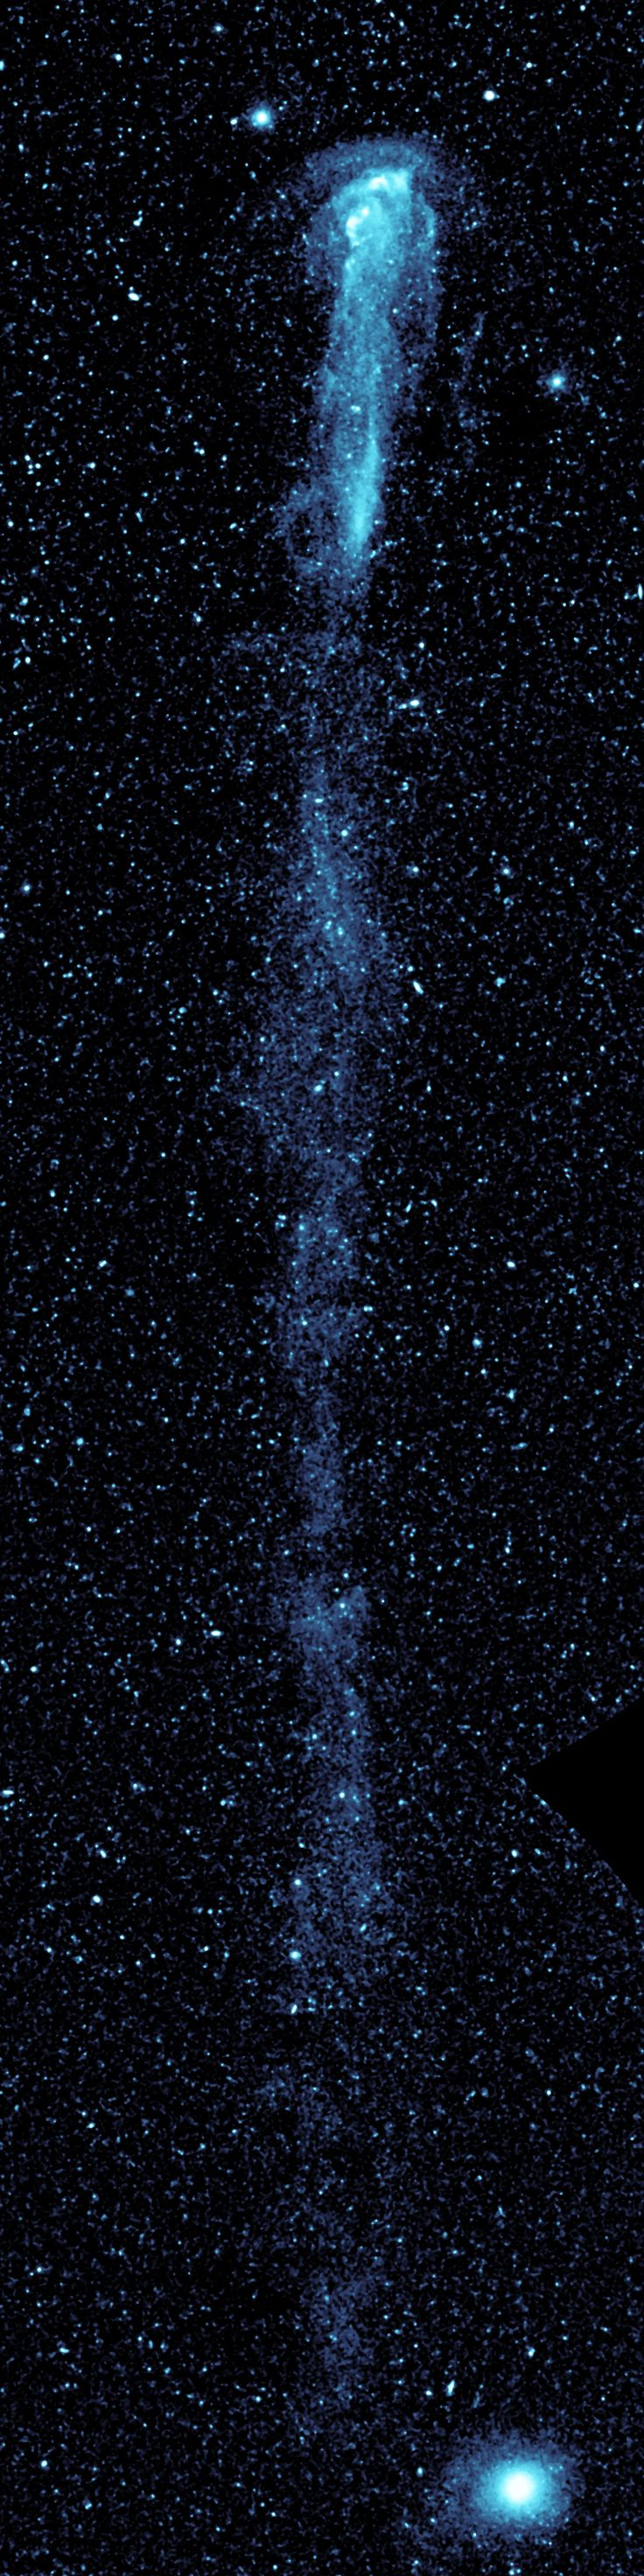 The star Mira, with its 13-light-year-long tail, zips through the galaxy at 291,000 miles per hour! This image was made from several Galaxy Evolution Explorer images put together into a mosaic.